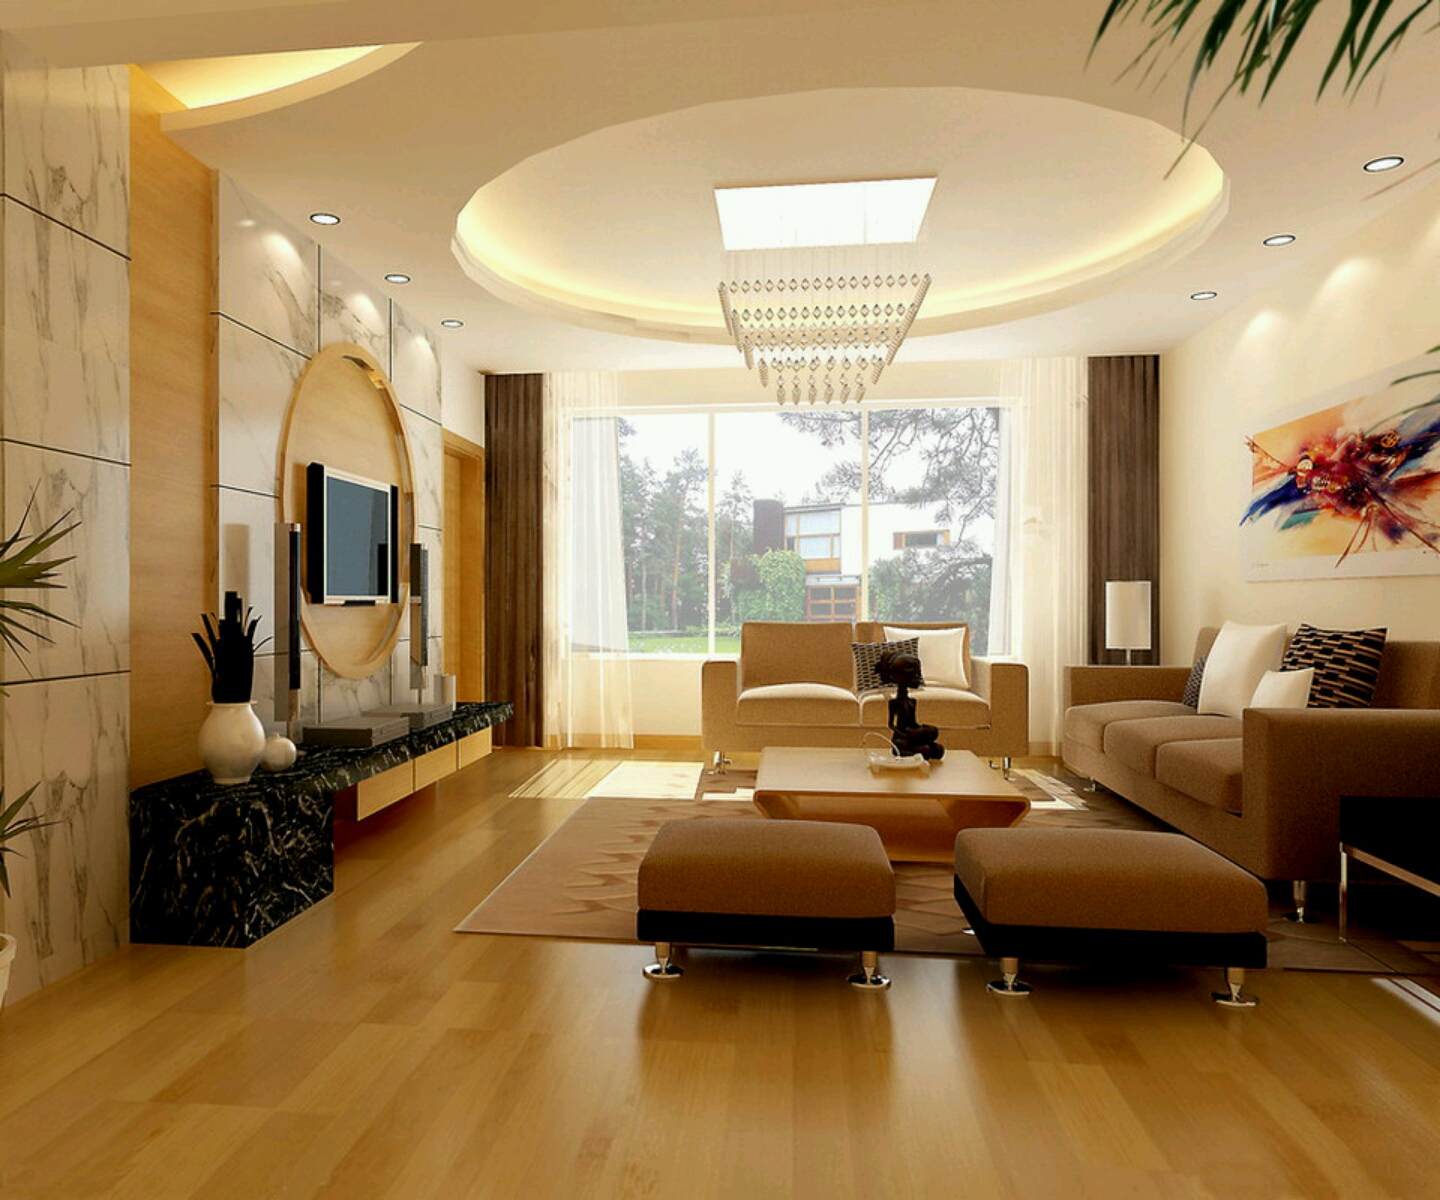 Modern interior decoration living rooms ceiling designs Living room styles ideas